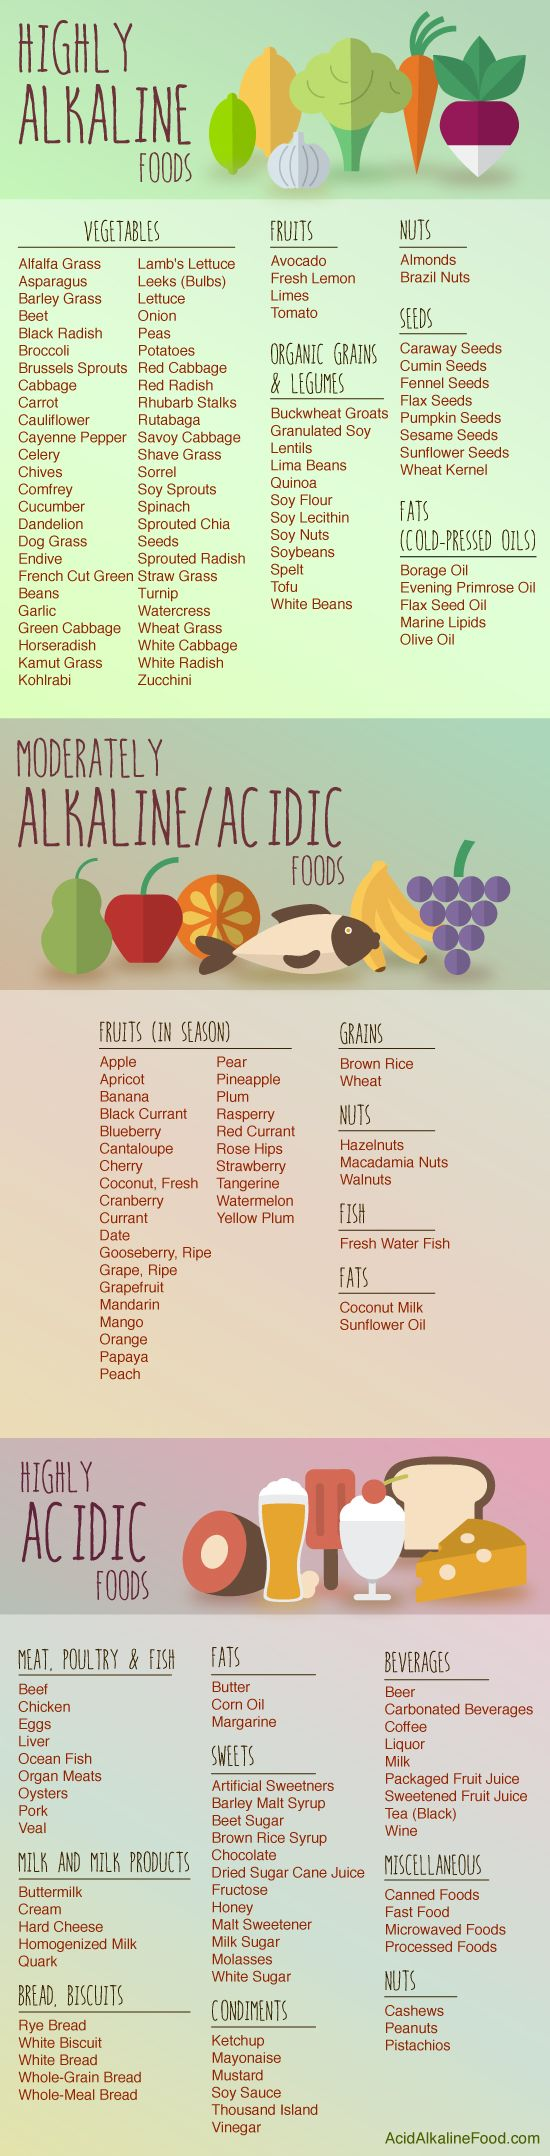 The acid and alkaline food chart! This is the web version, see below for the PDF download for a printable version